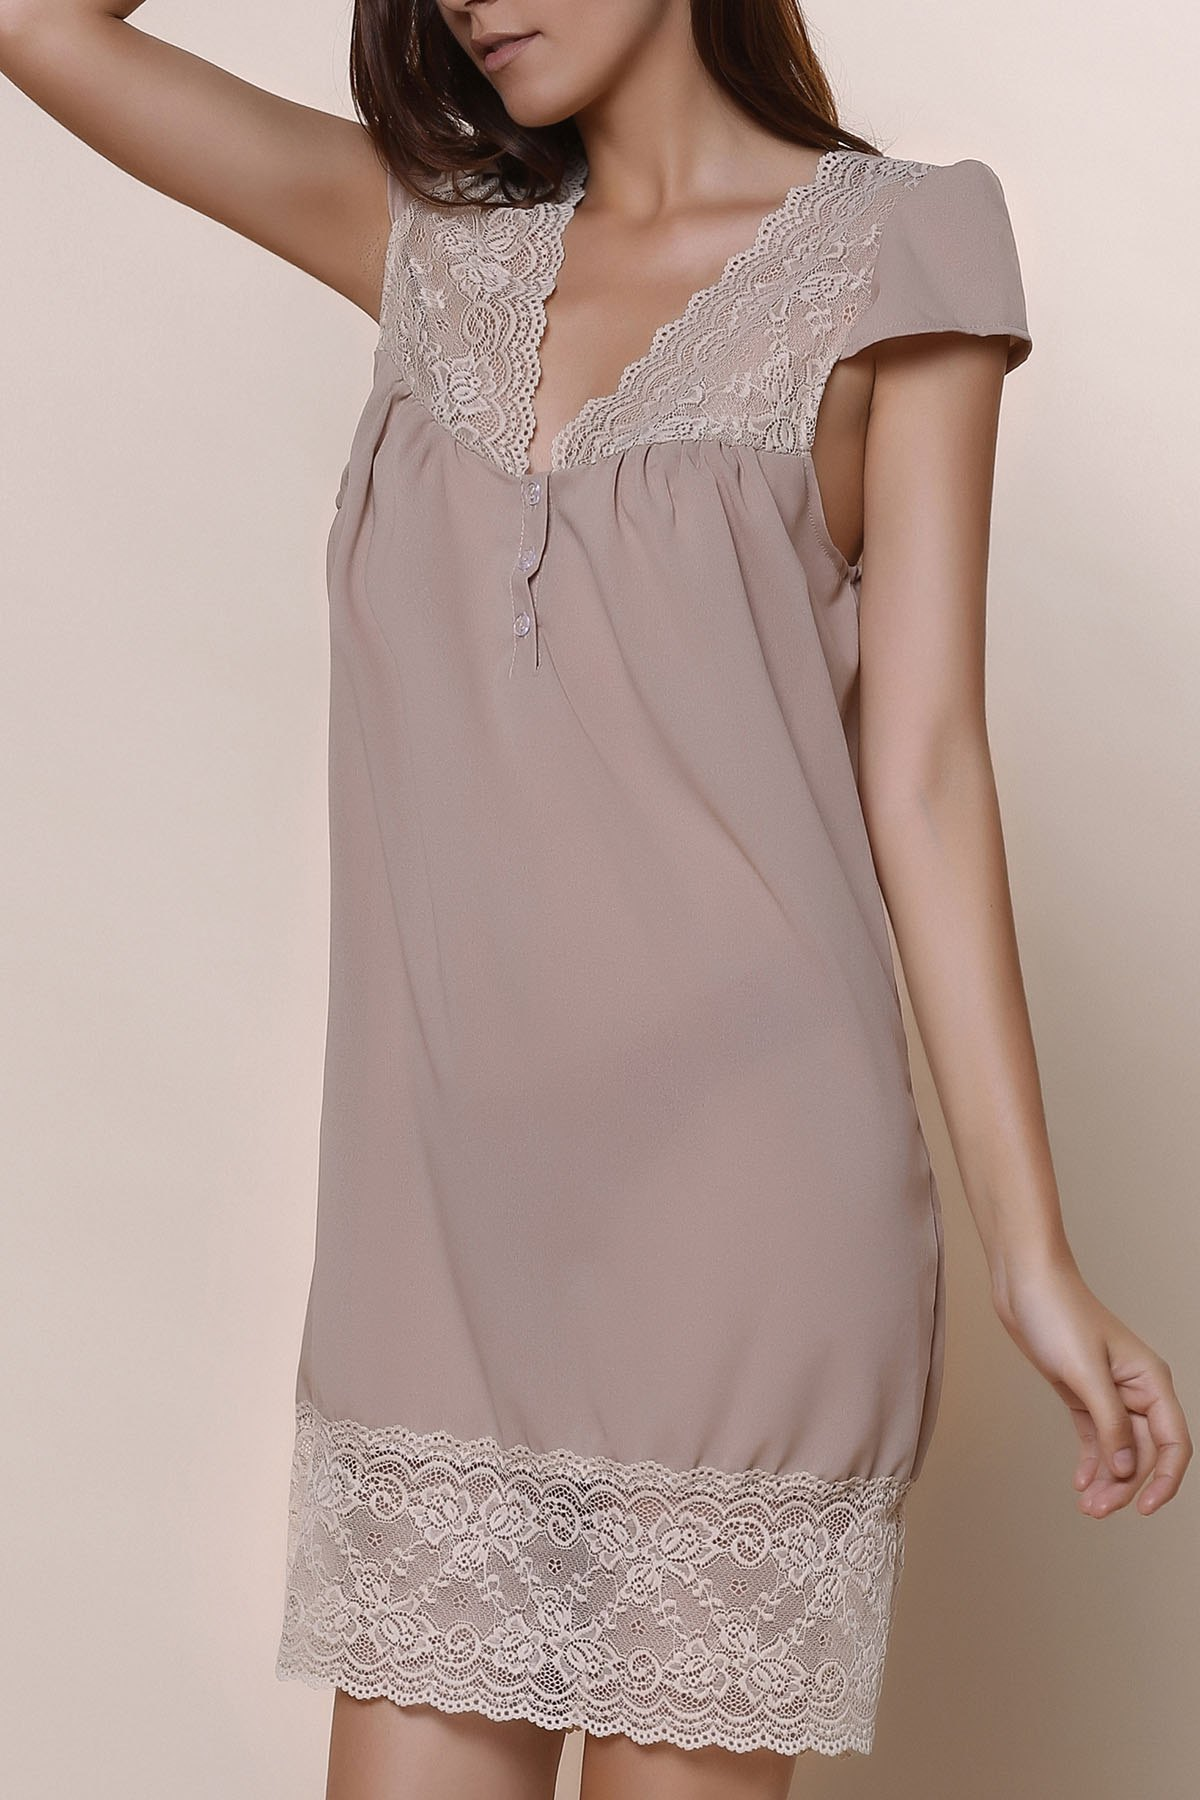 Hot Sexy Plunging Neck Short Sleeve Laciness Solid Color Women's Dress